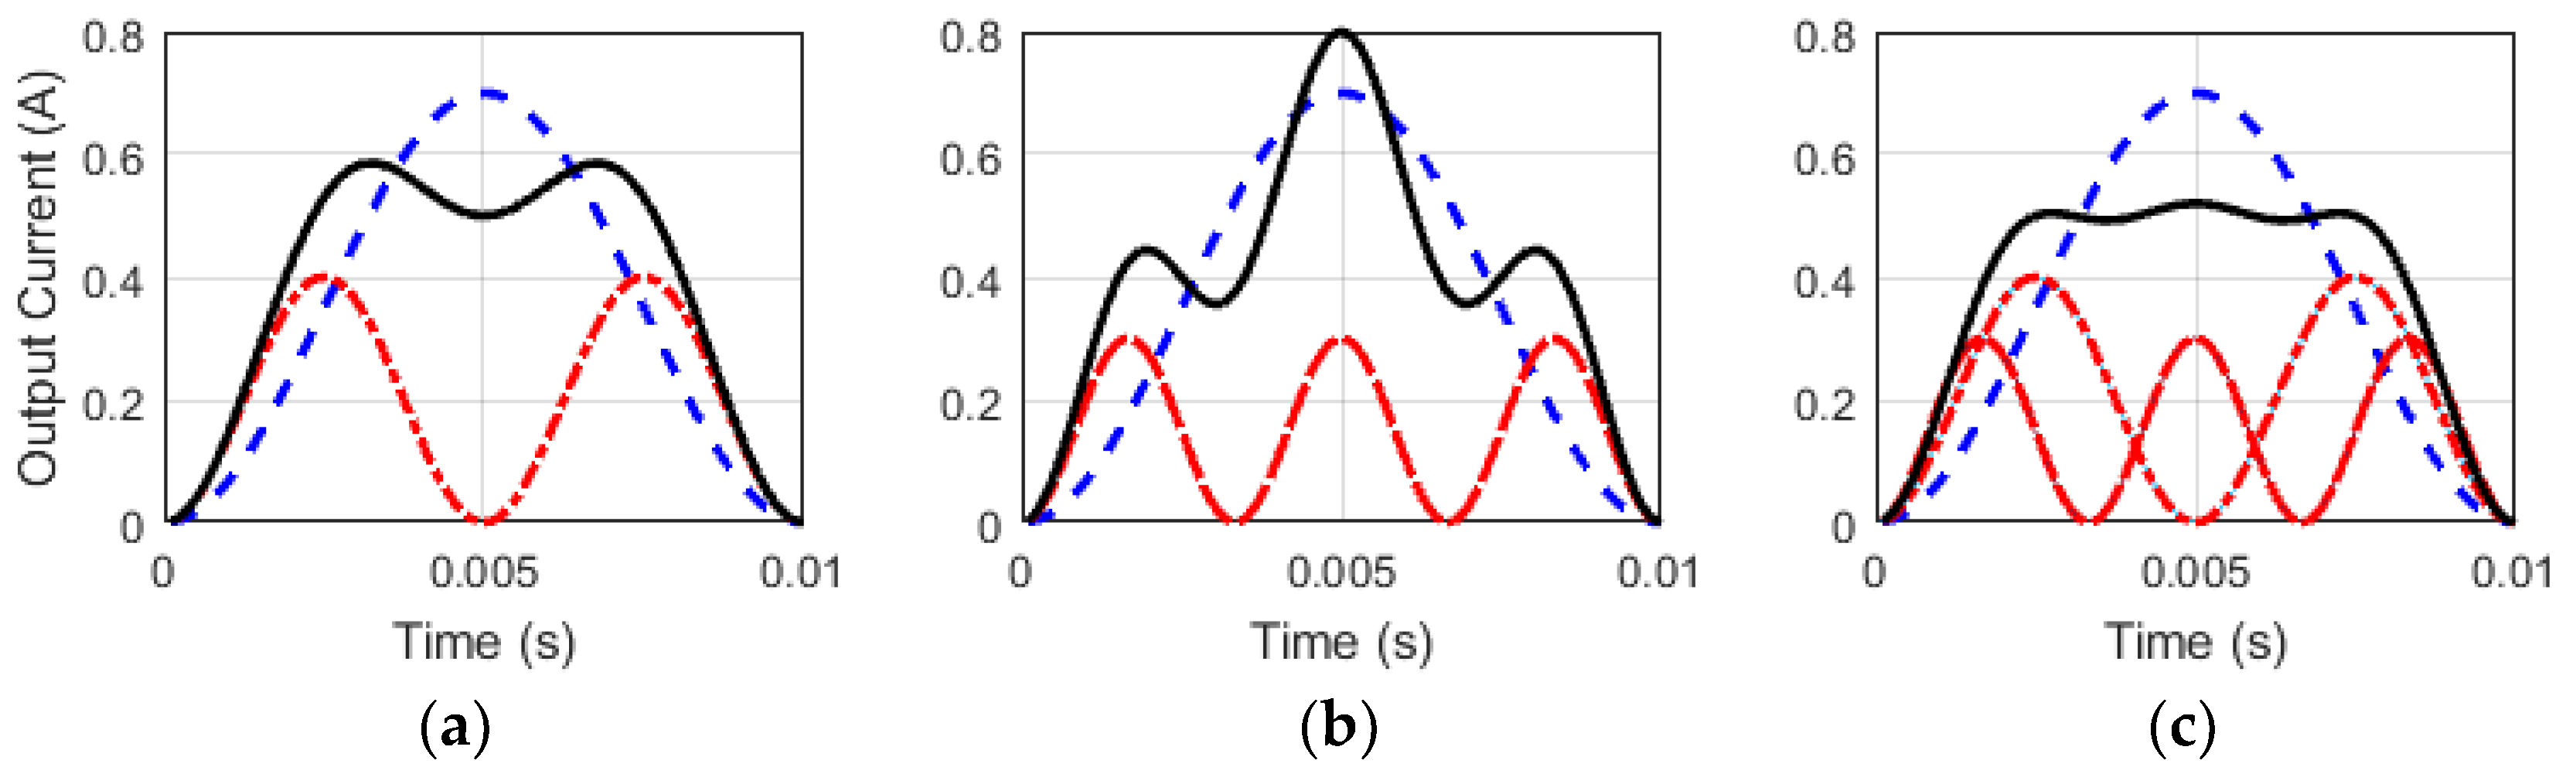 Energies Free Full Text Analysis And Control Of Electrolytic White Led Driver Circuits For Offline Applications Using Standard Pwm 11 03030 G001